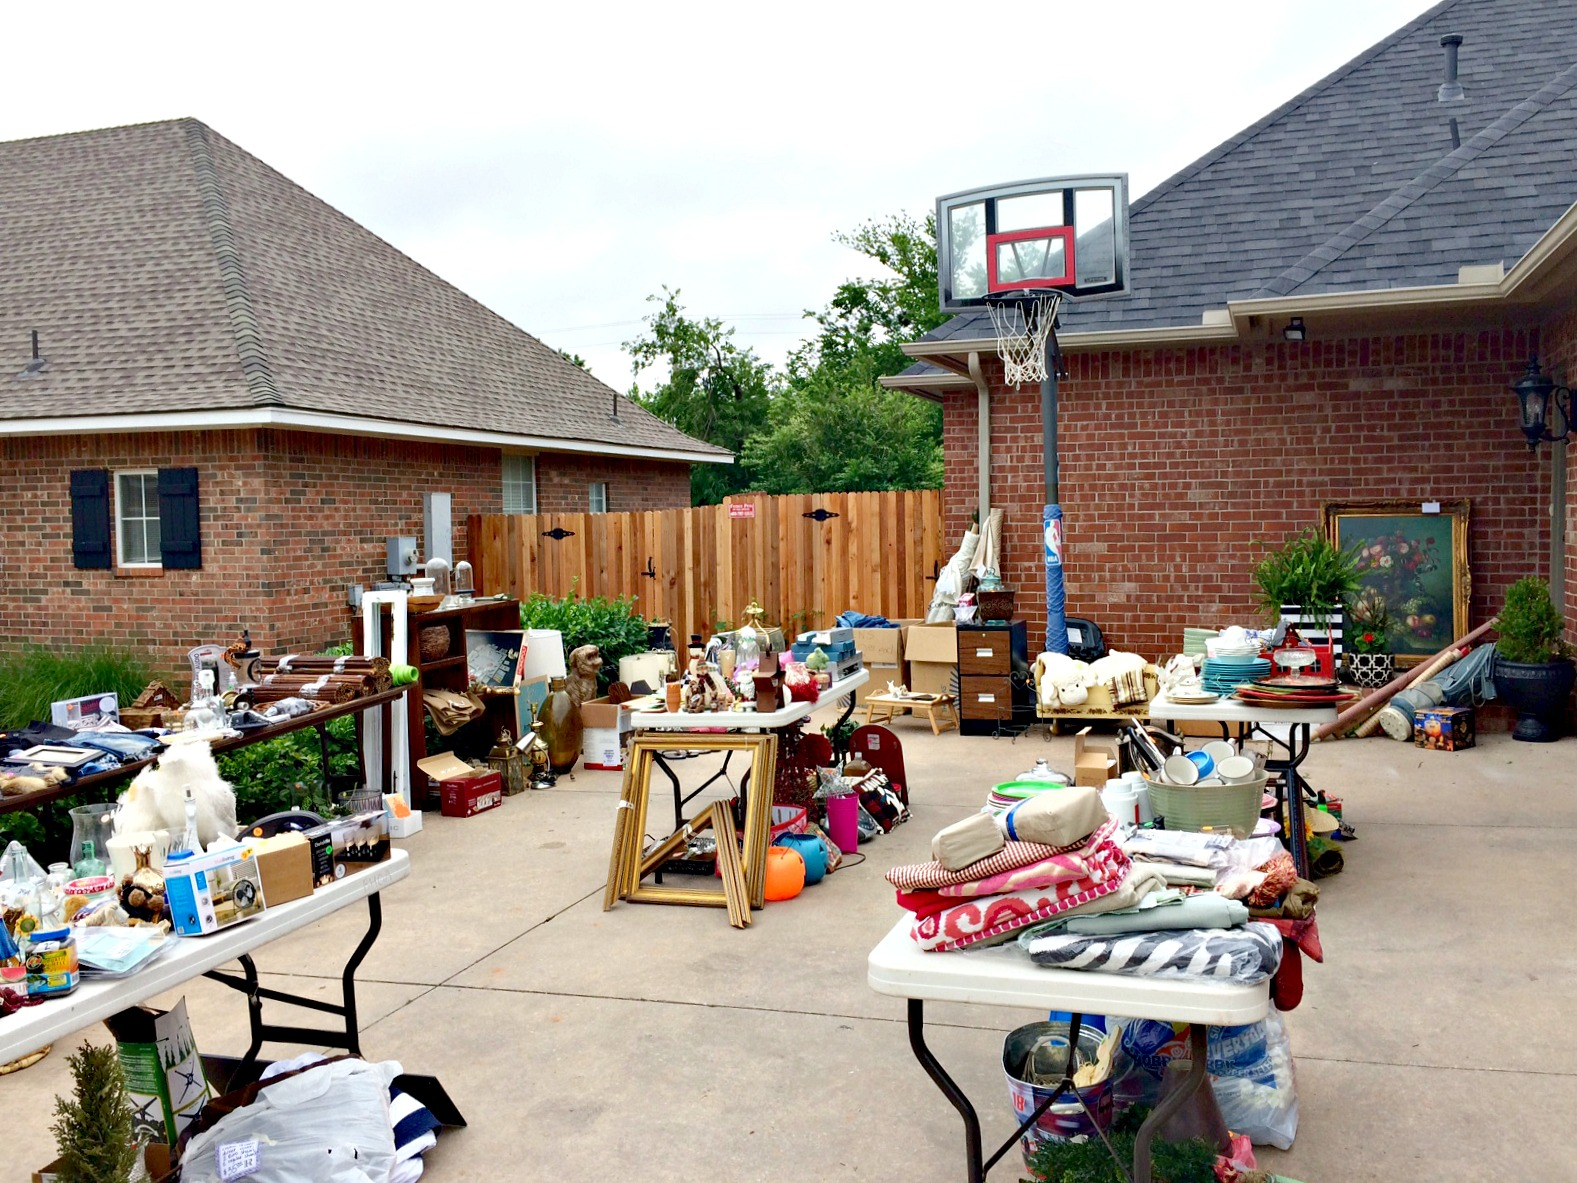 HOW TO HAVE A GREAT GARAGE SALE: TIPS AND TRICKS FOR A